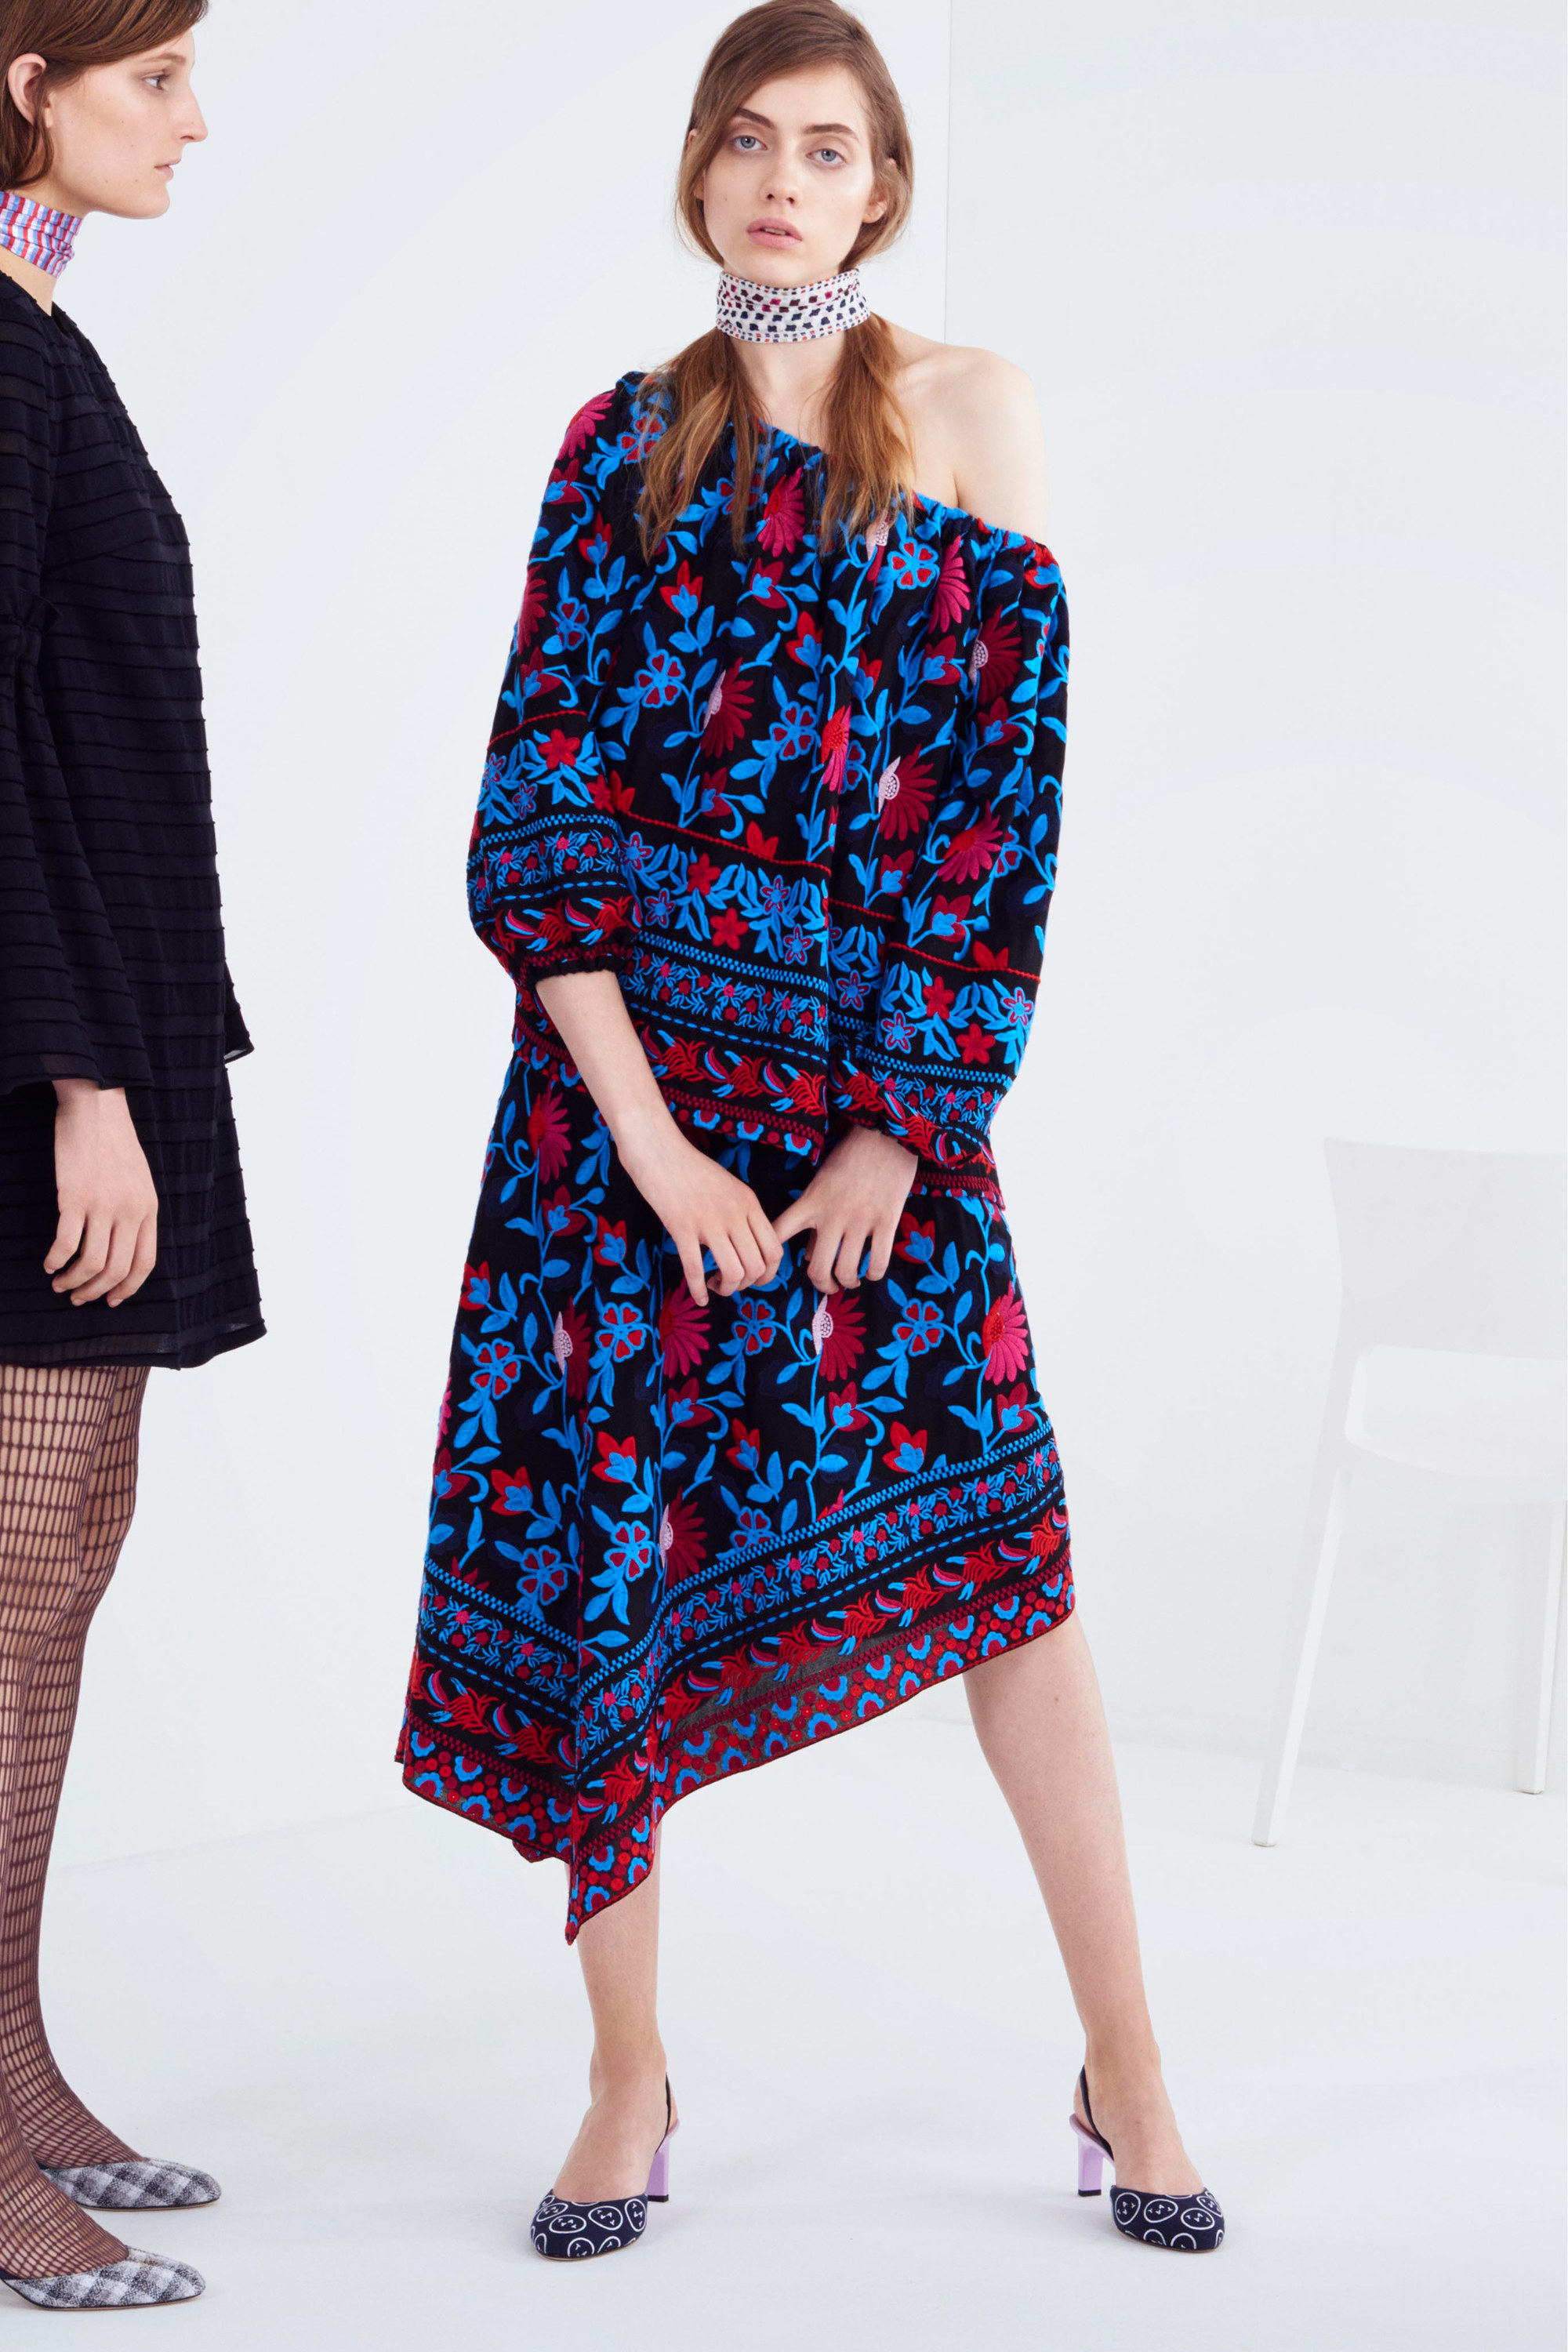 tanya-taylor-pre-fall-2016-lookbook-18.jpg